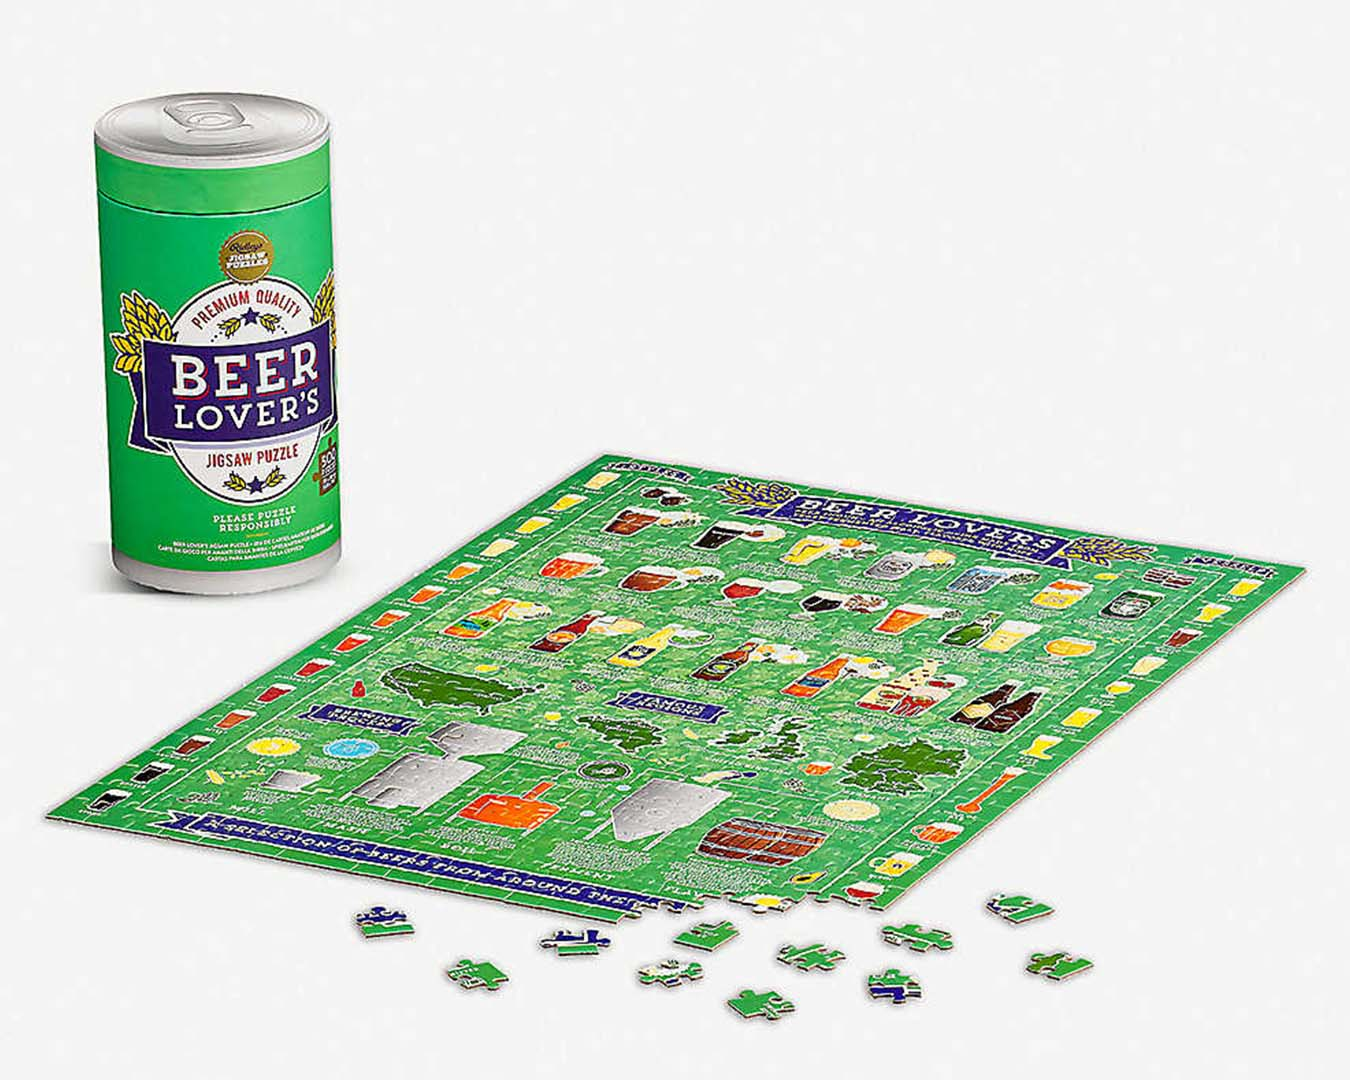 Green, partially made puzzle featuring pictures of beer, sits on a white table. In the background is a puzzle box in the shape of a beer tin.